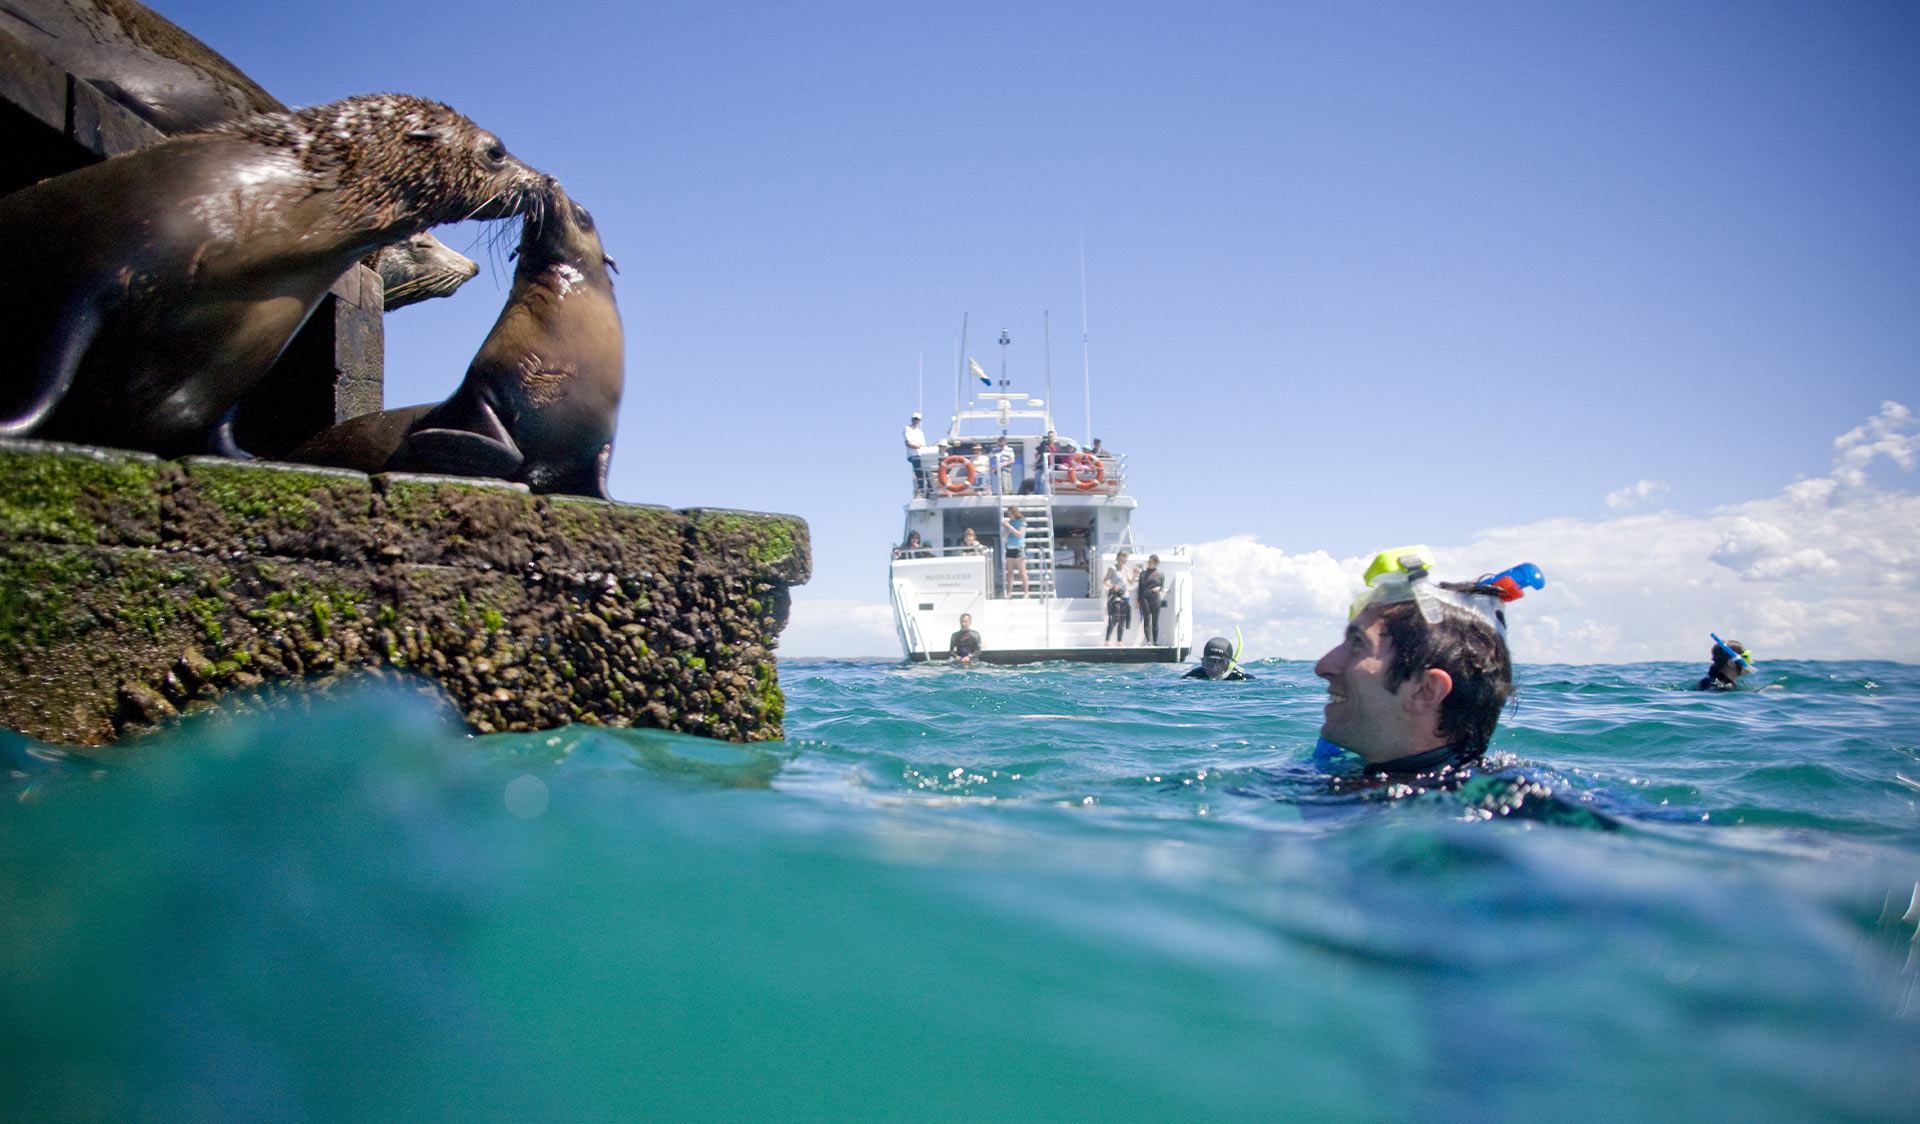 A snorkeler has a close encounter with a pair of seals at Chinamans Hat in Port Phillip Marine National Park.